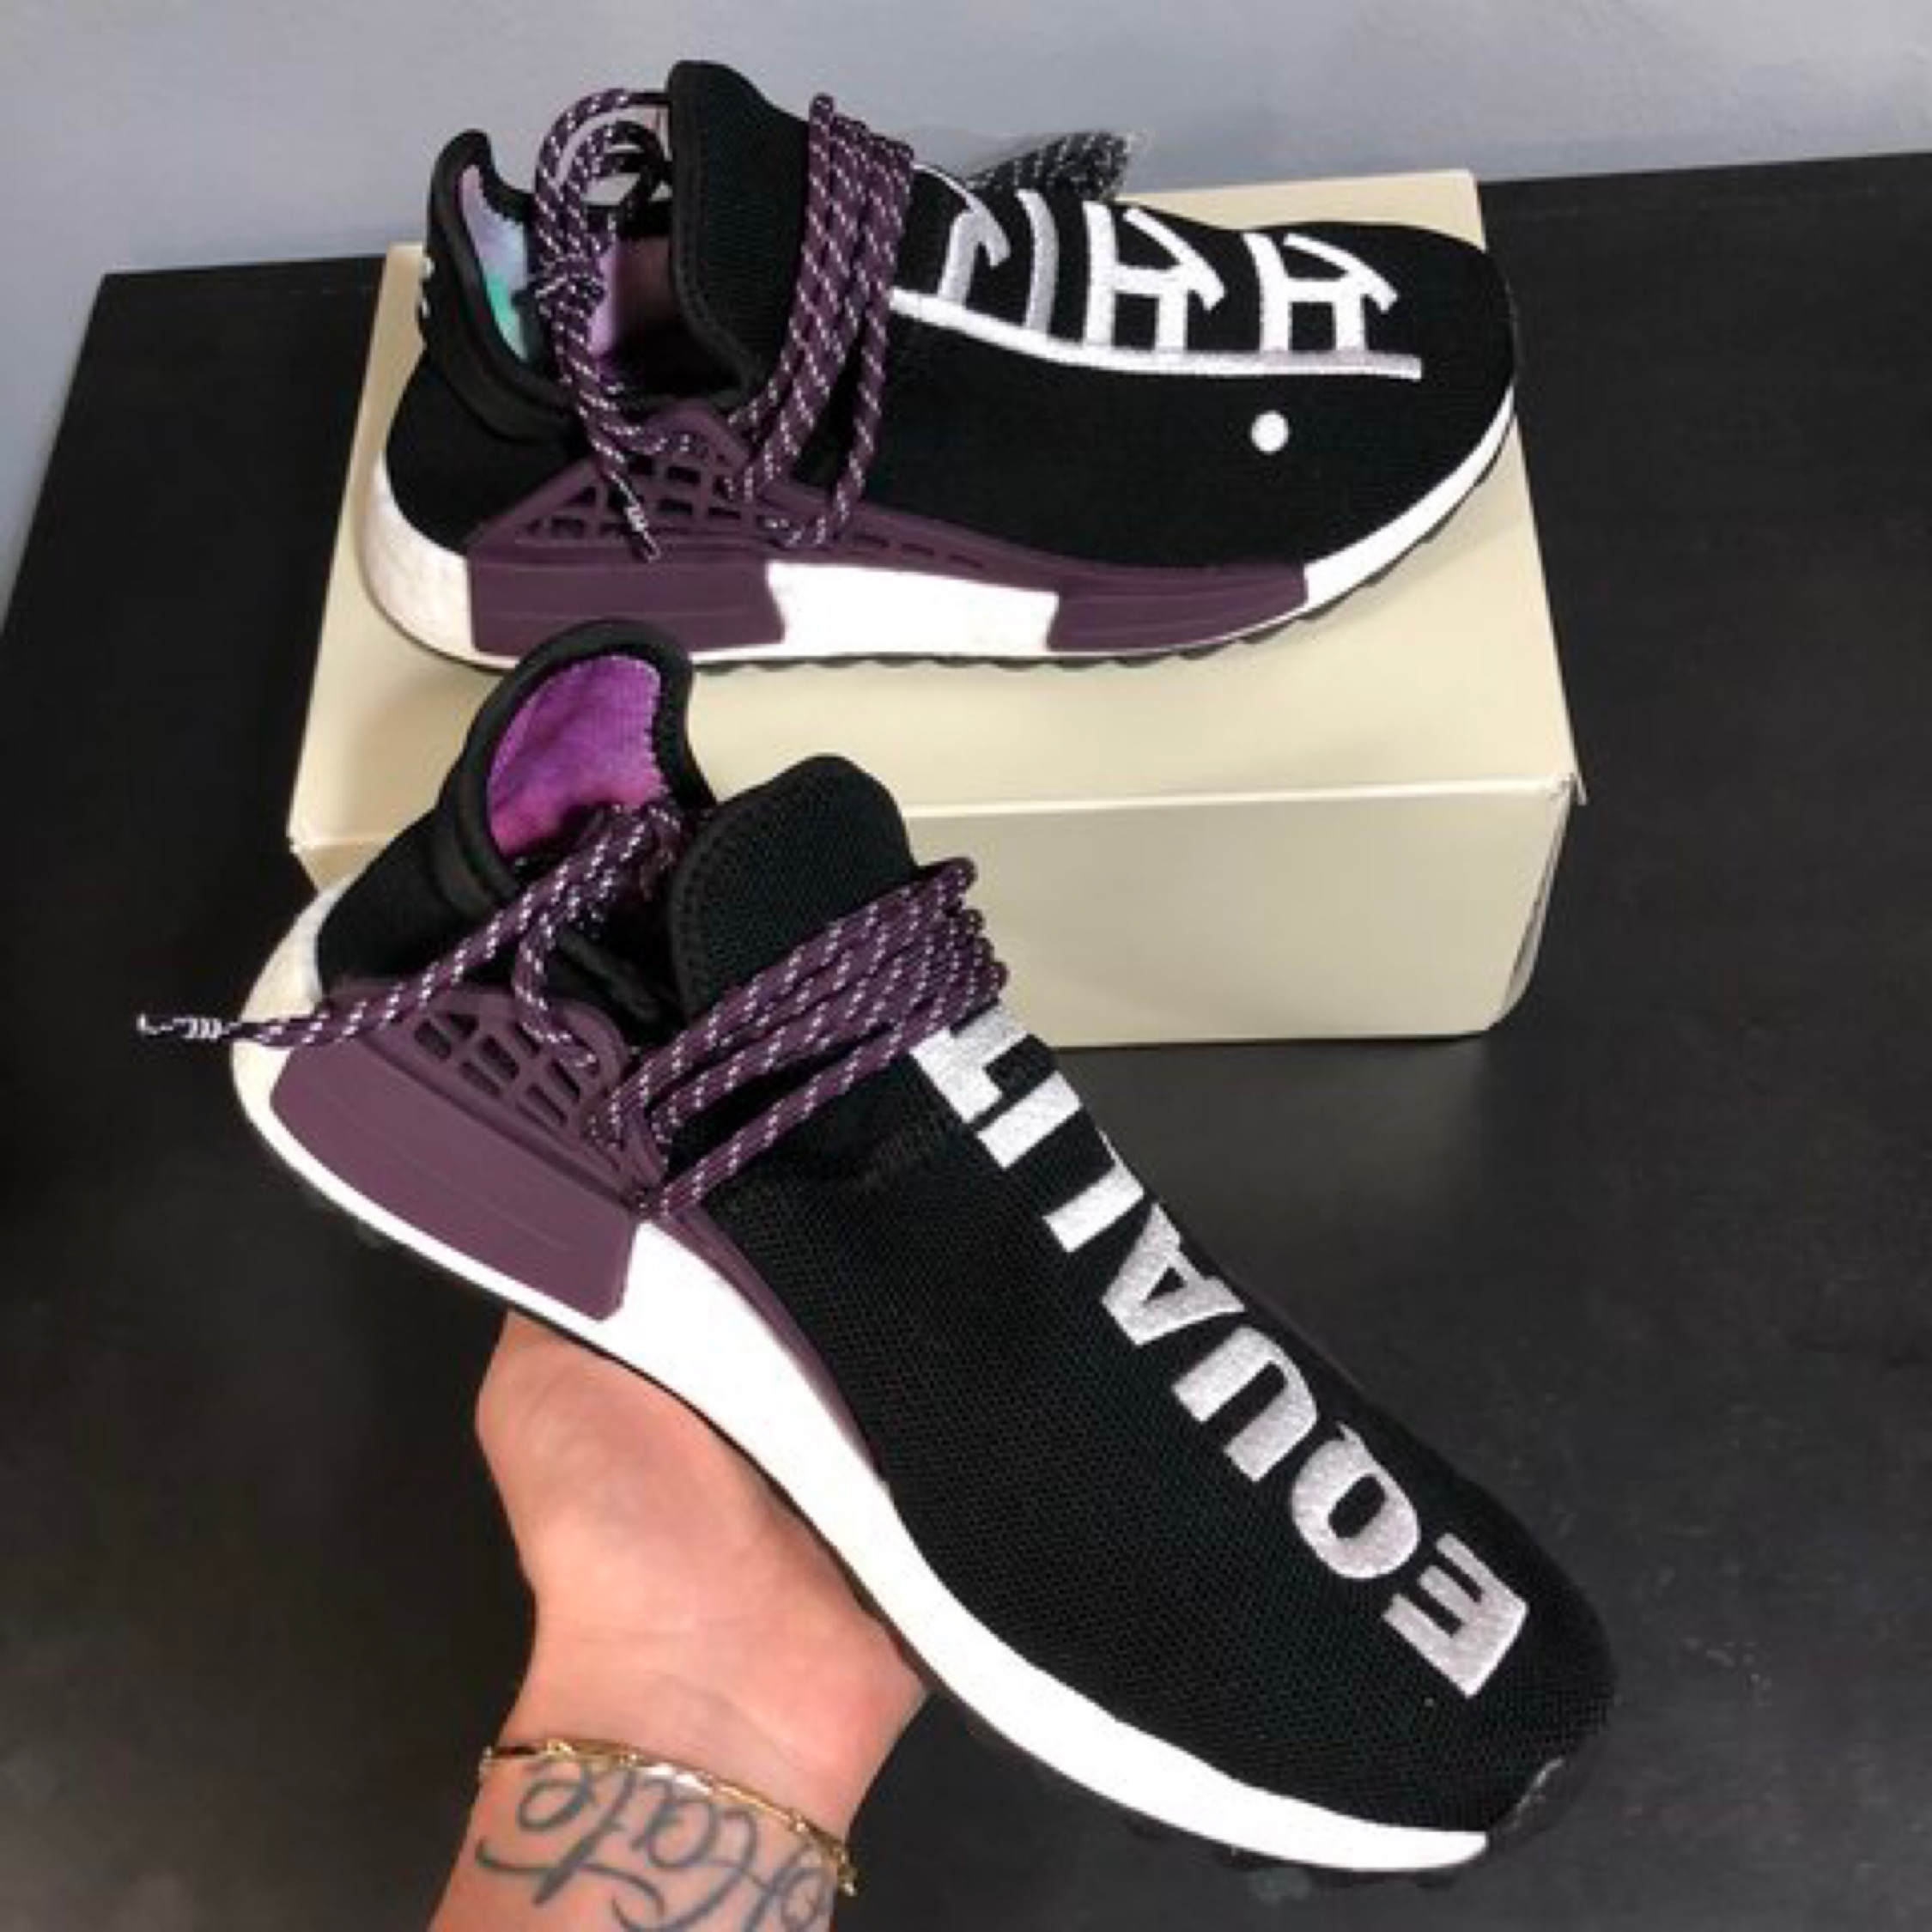 promo code e25b4 89a66 Adidas Human Race Nmd Equality Pharrell Williams